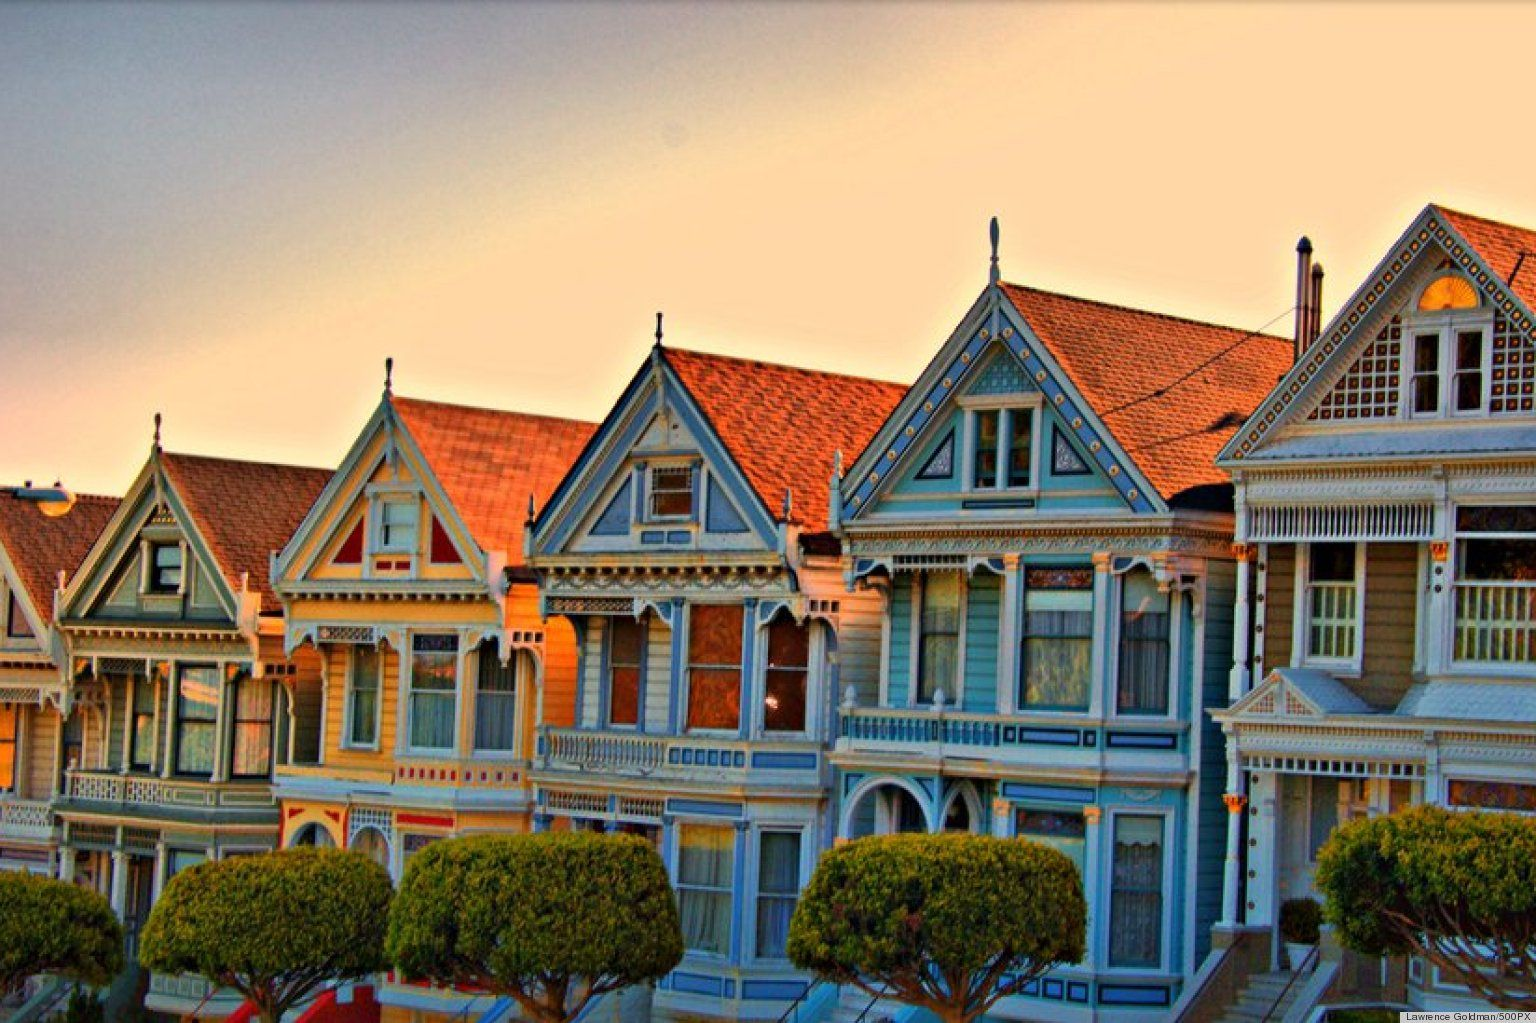 painted ladies san francisco | San Francisco's 'Painted ...